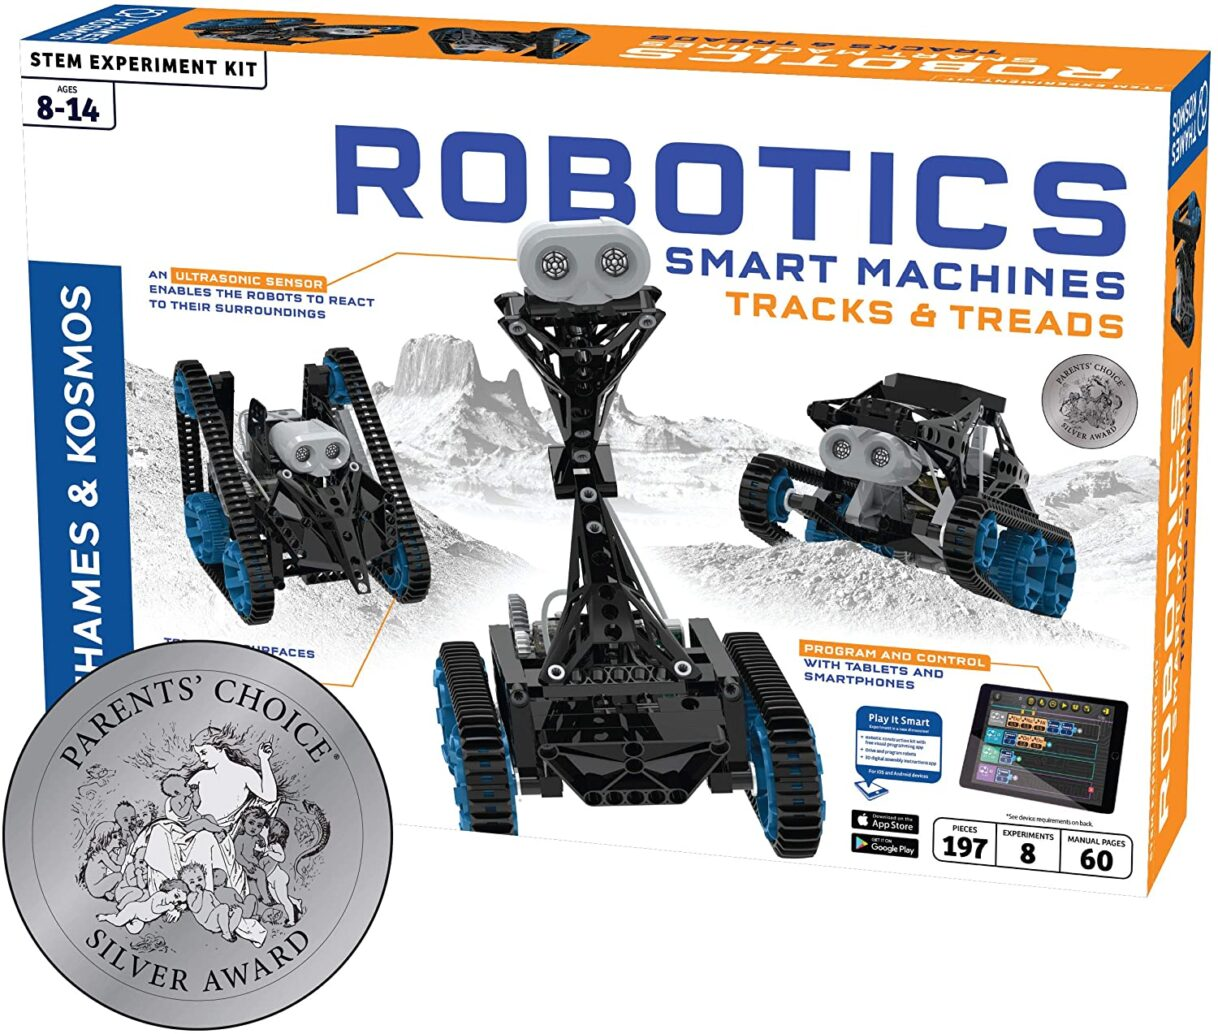 Robotics: Thames & Kosmos – Robotics Smart Machines – Tracks & Treads Kit – Builds 8 Different Robots!